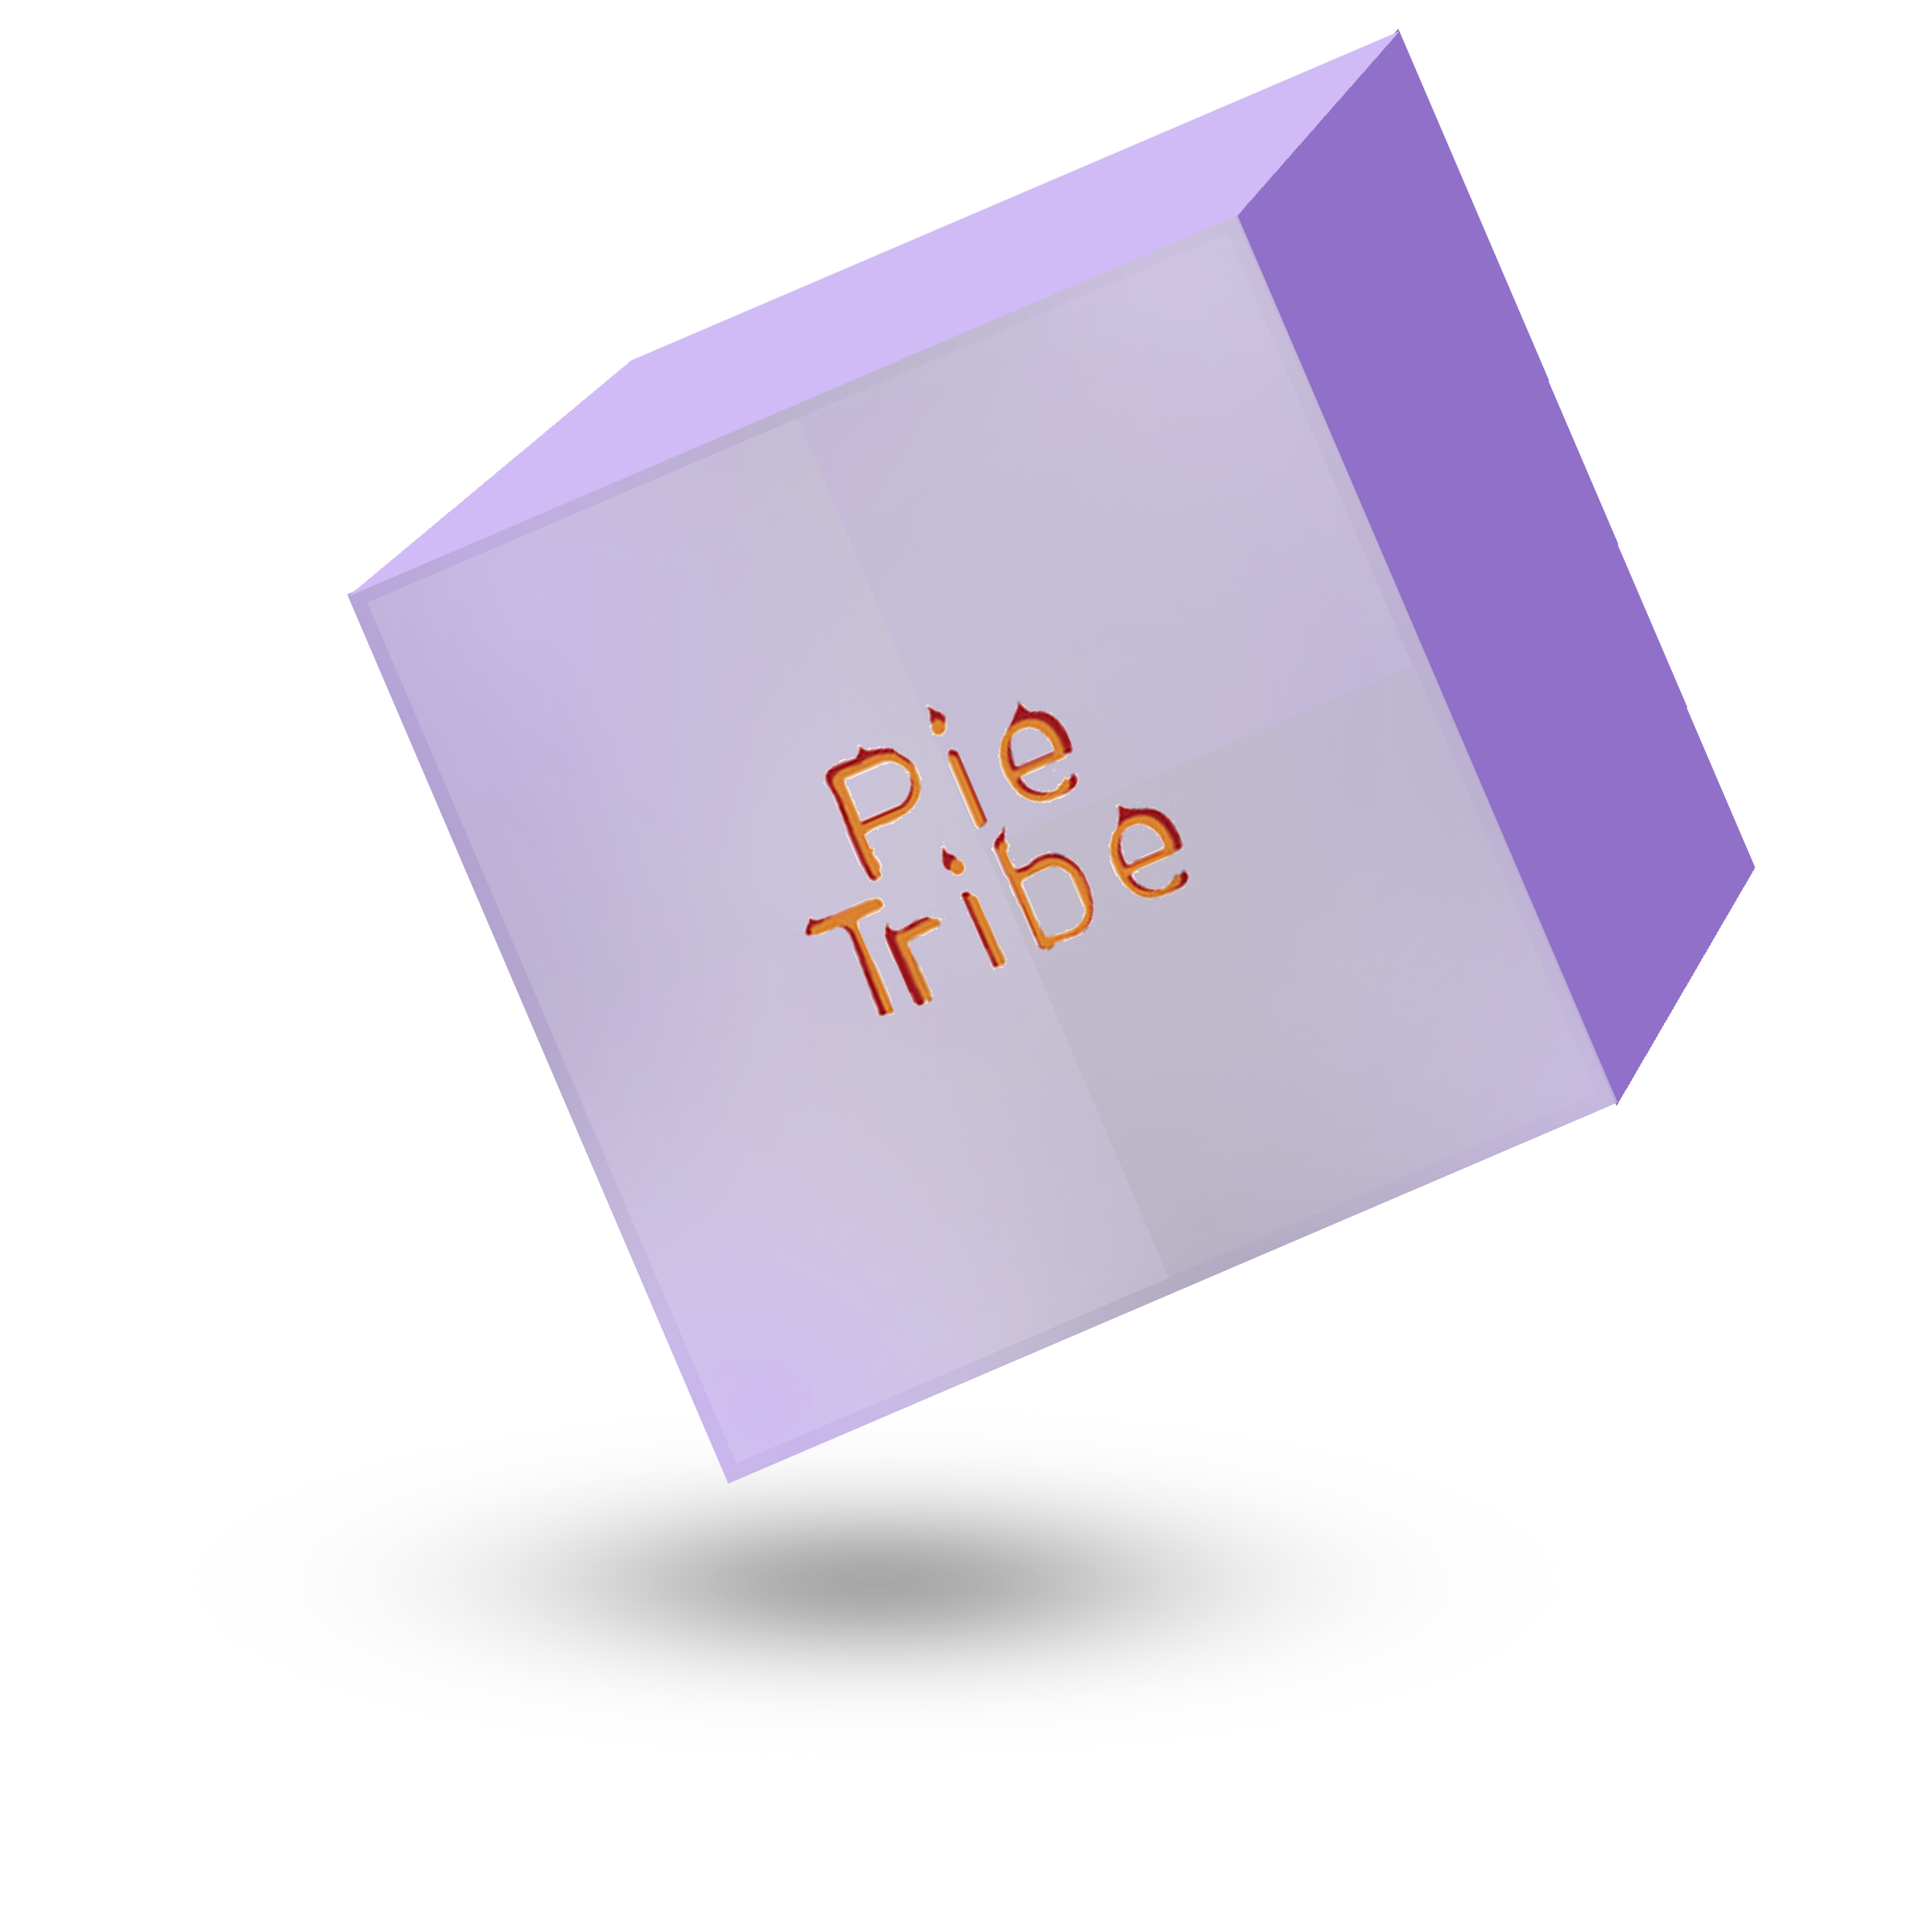 BRAND-CUBES-PIETRIBE.png